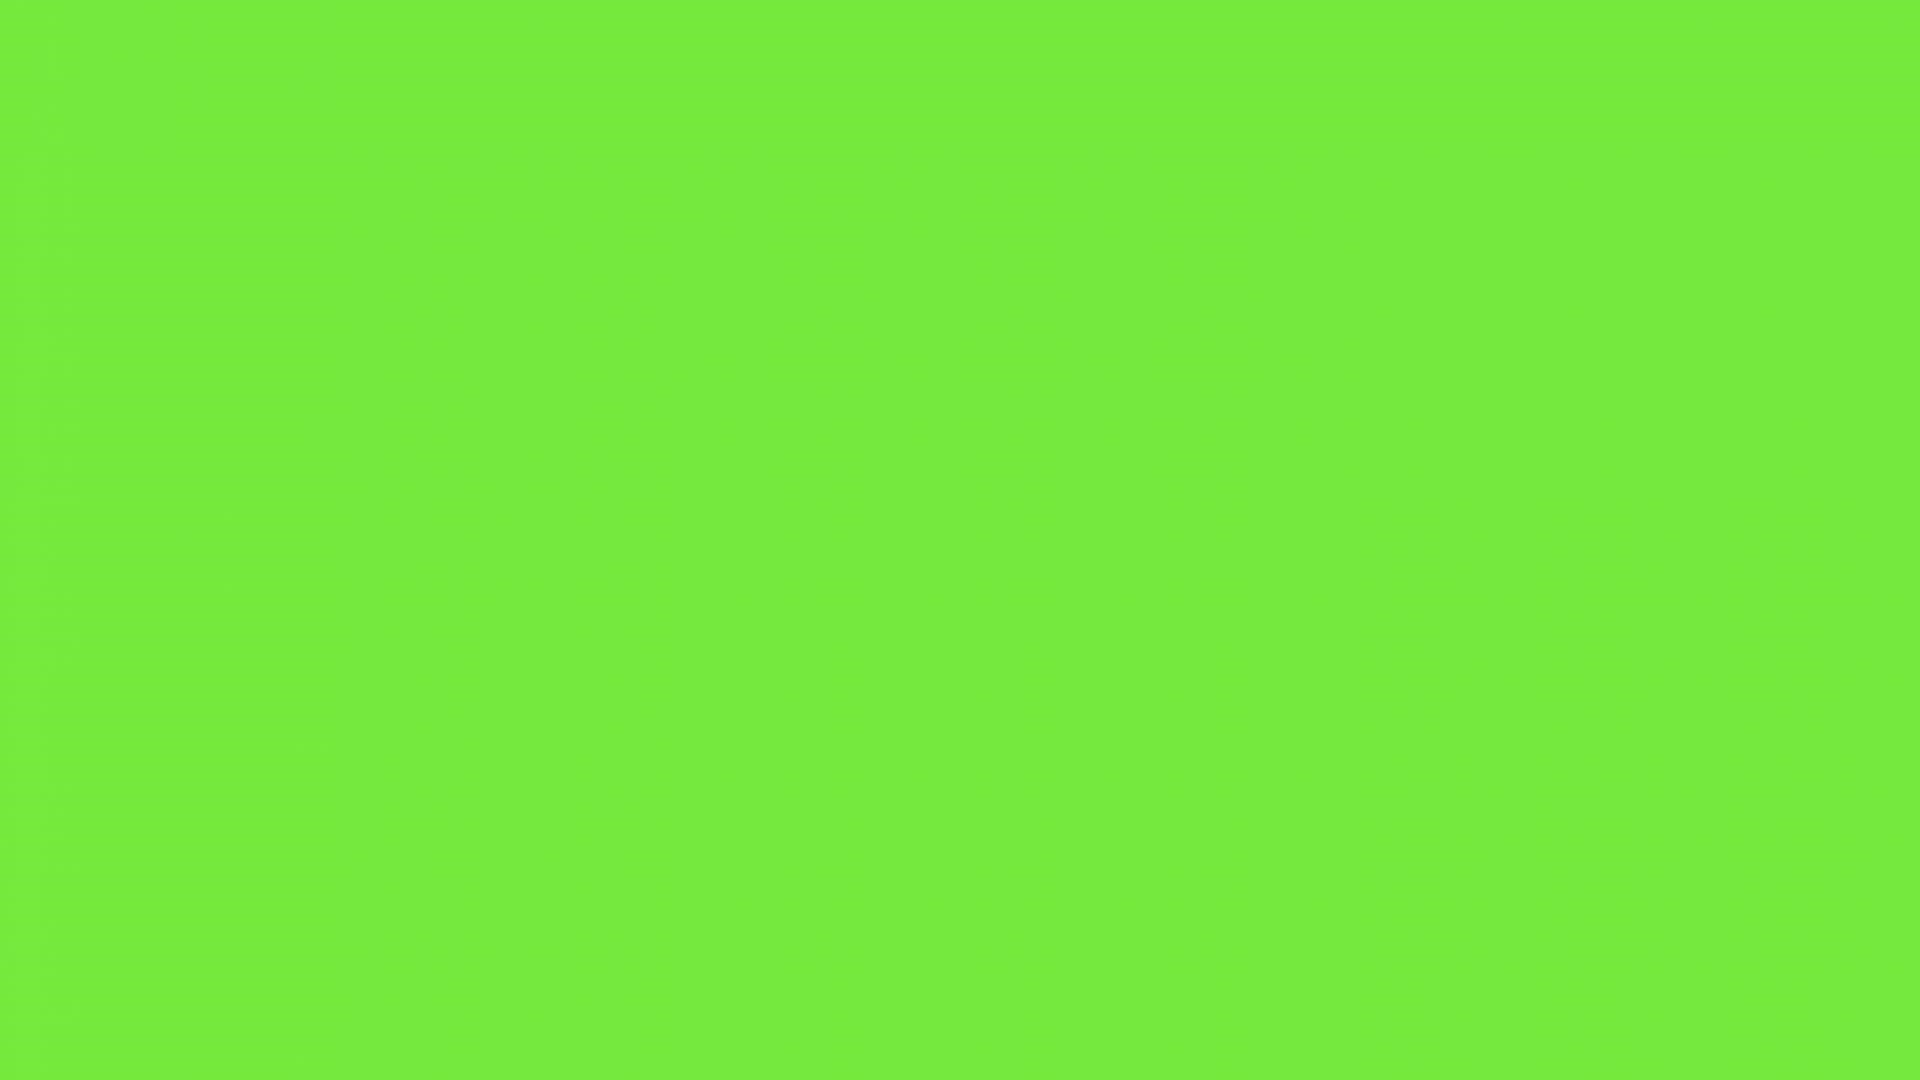 Lime Green Wallpaper and Background